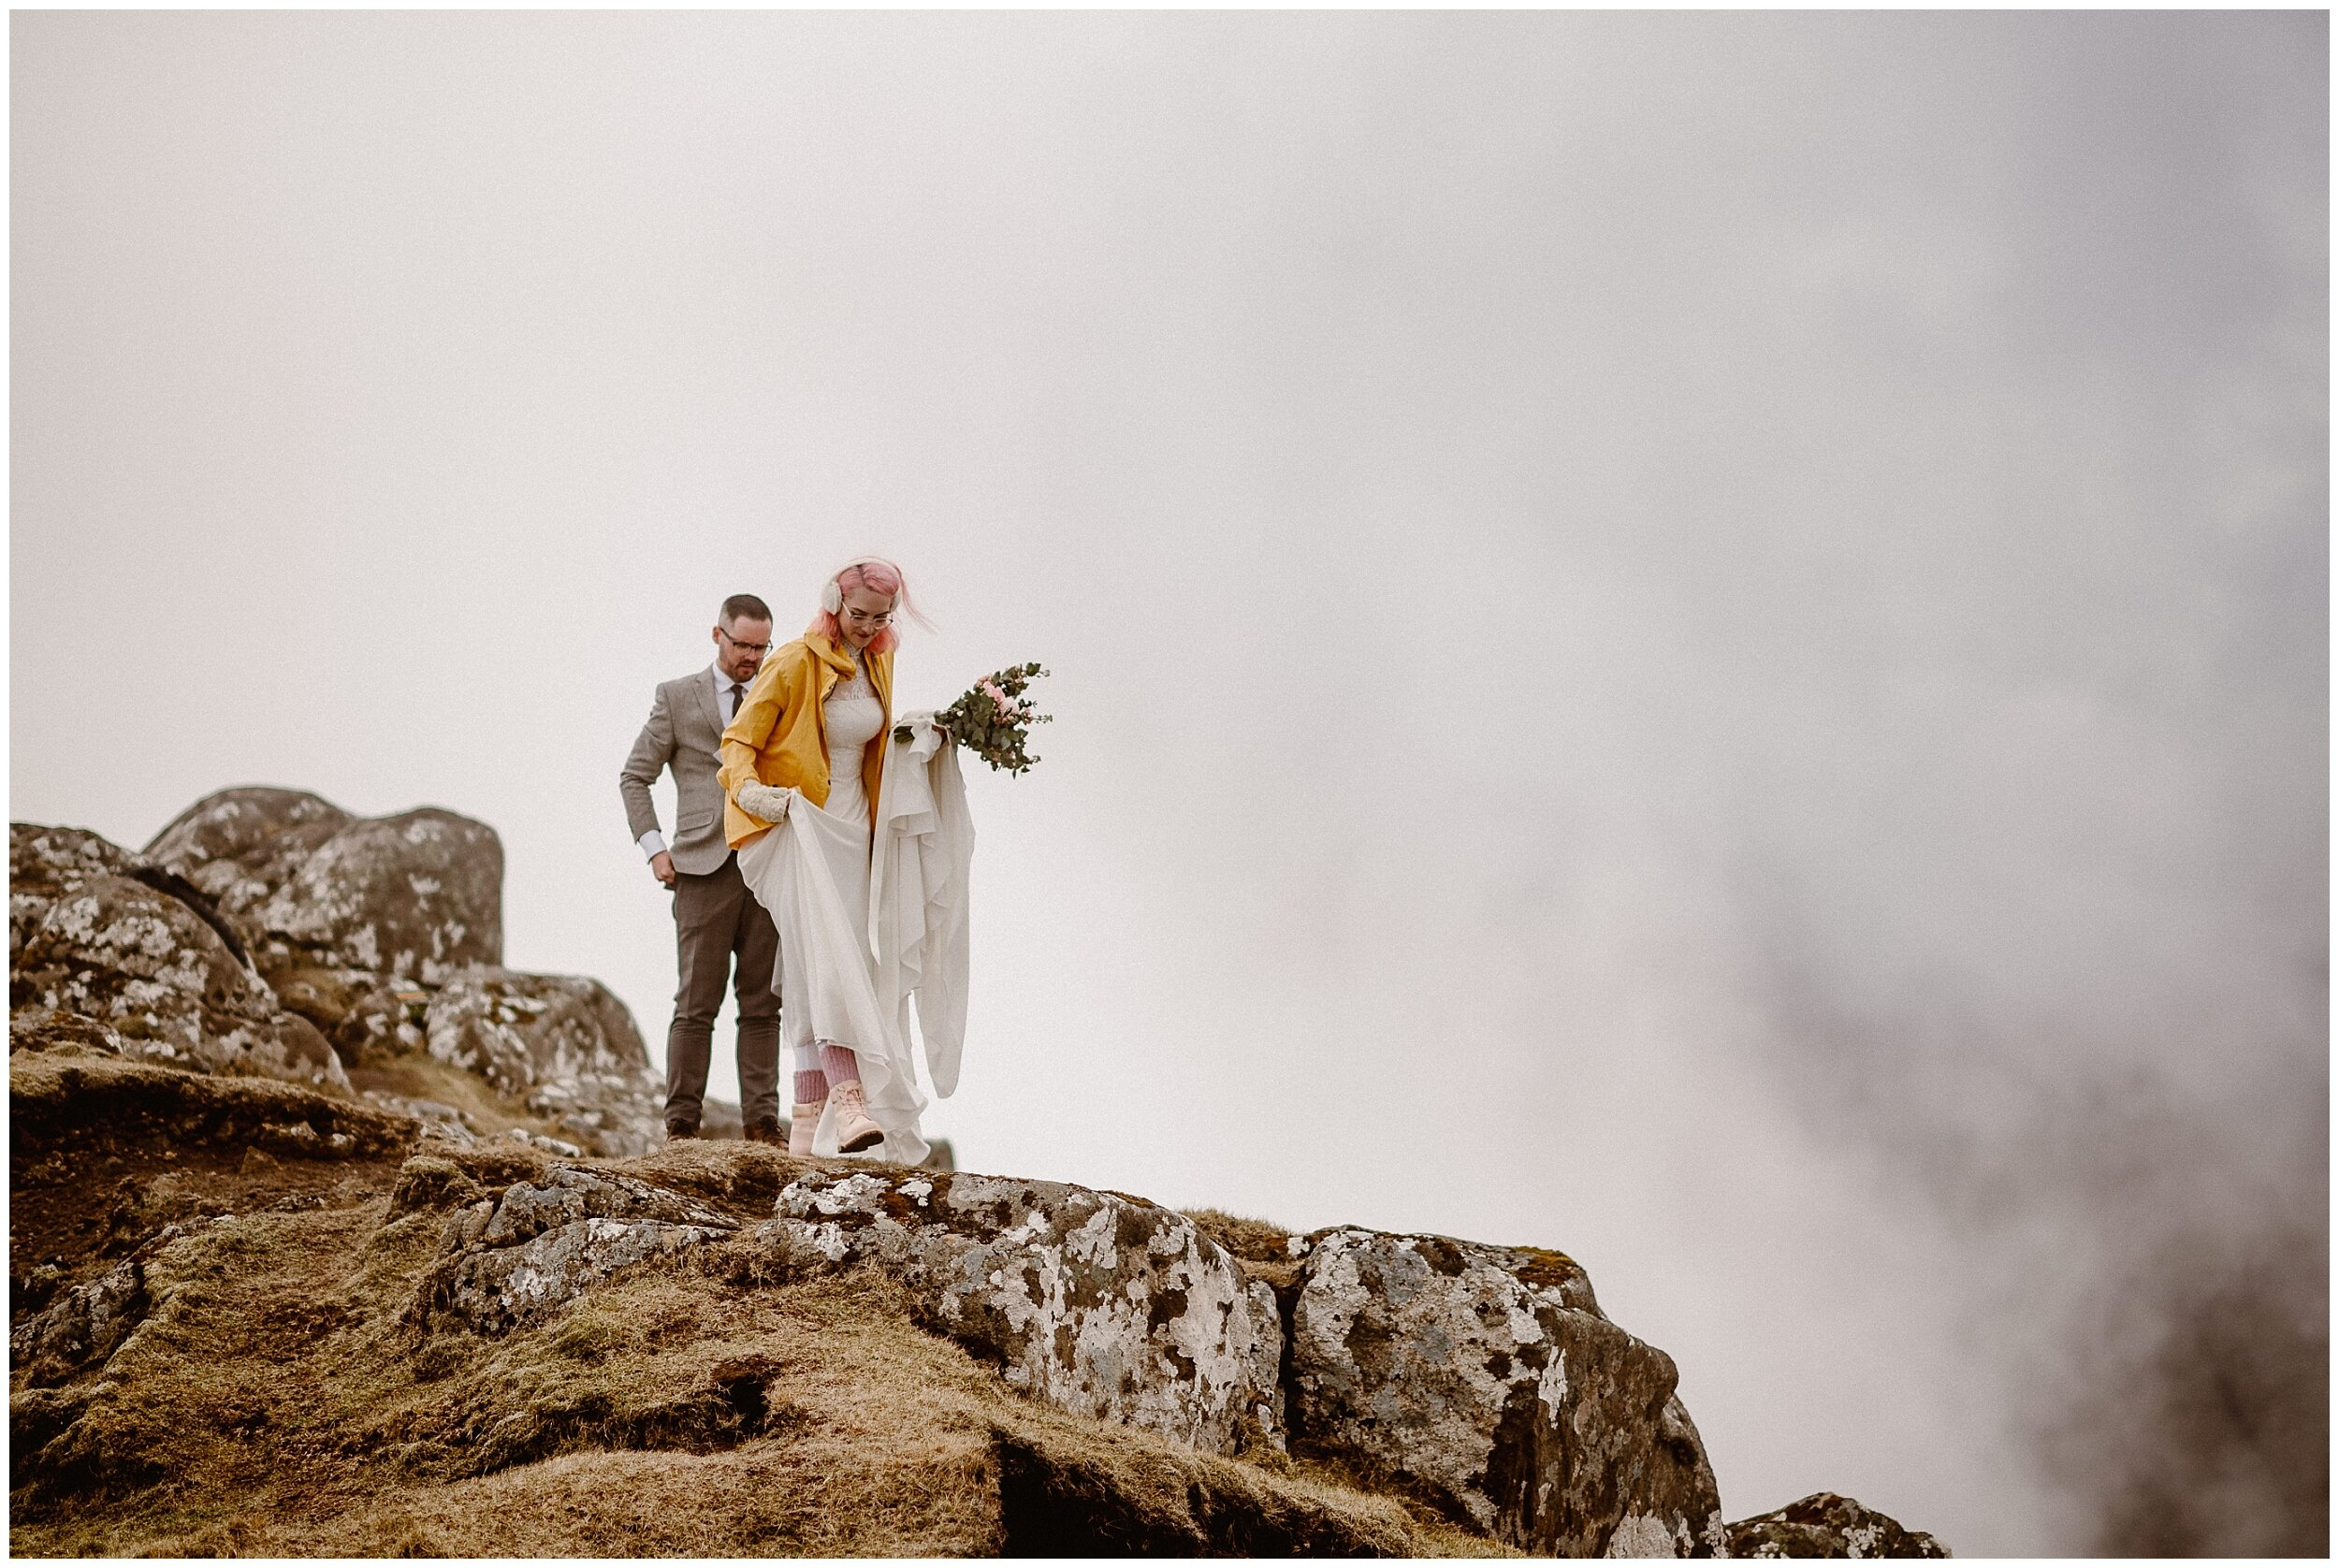 Elaura and Daryn begin the hike up to their Faroe Island destination elopement ceremony at the top of a Faroe Island mountain. These adventure elopement photos were captured by destination wedding photographer Adventure Instead.